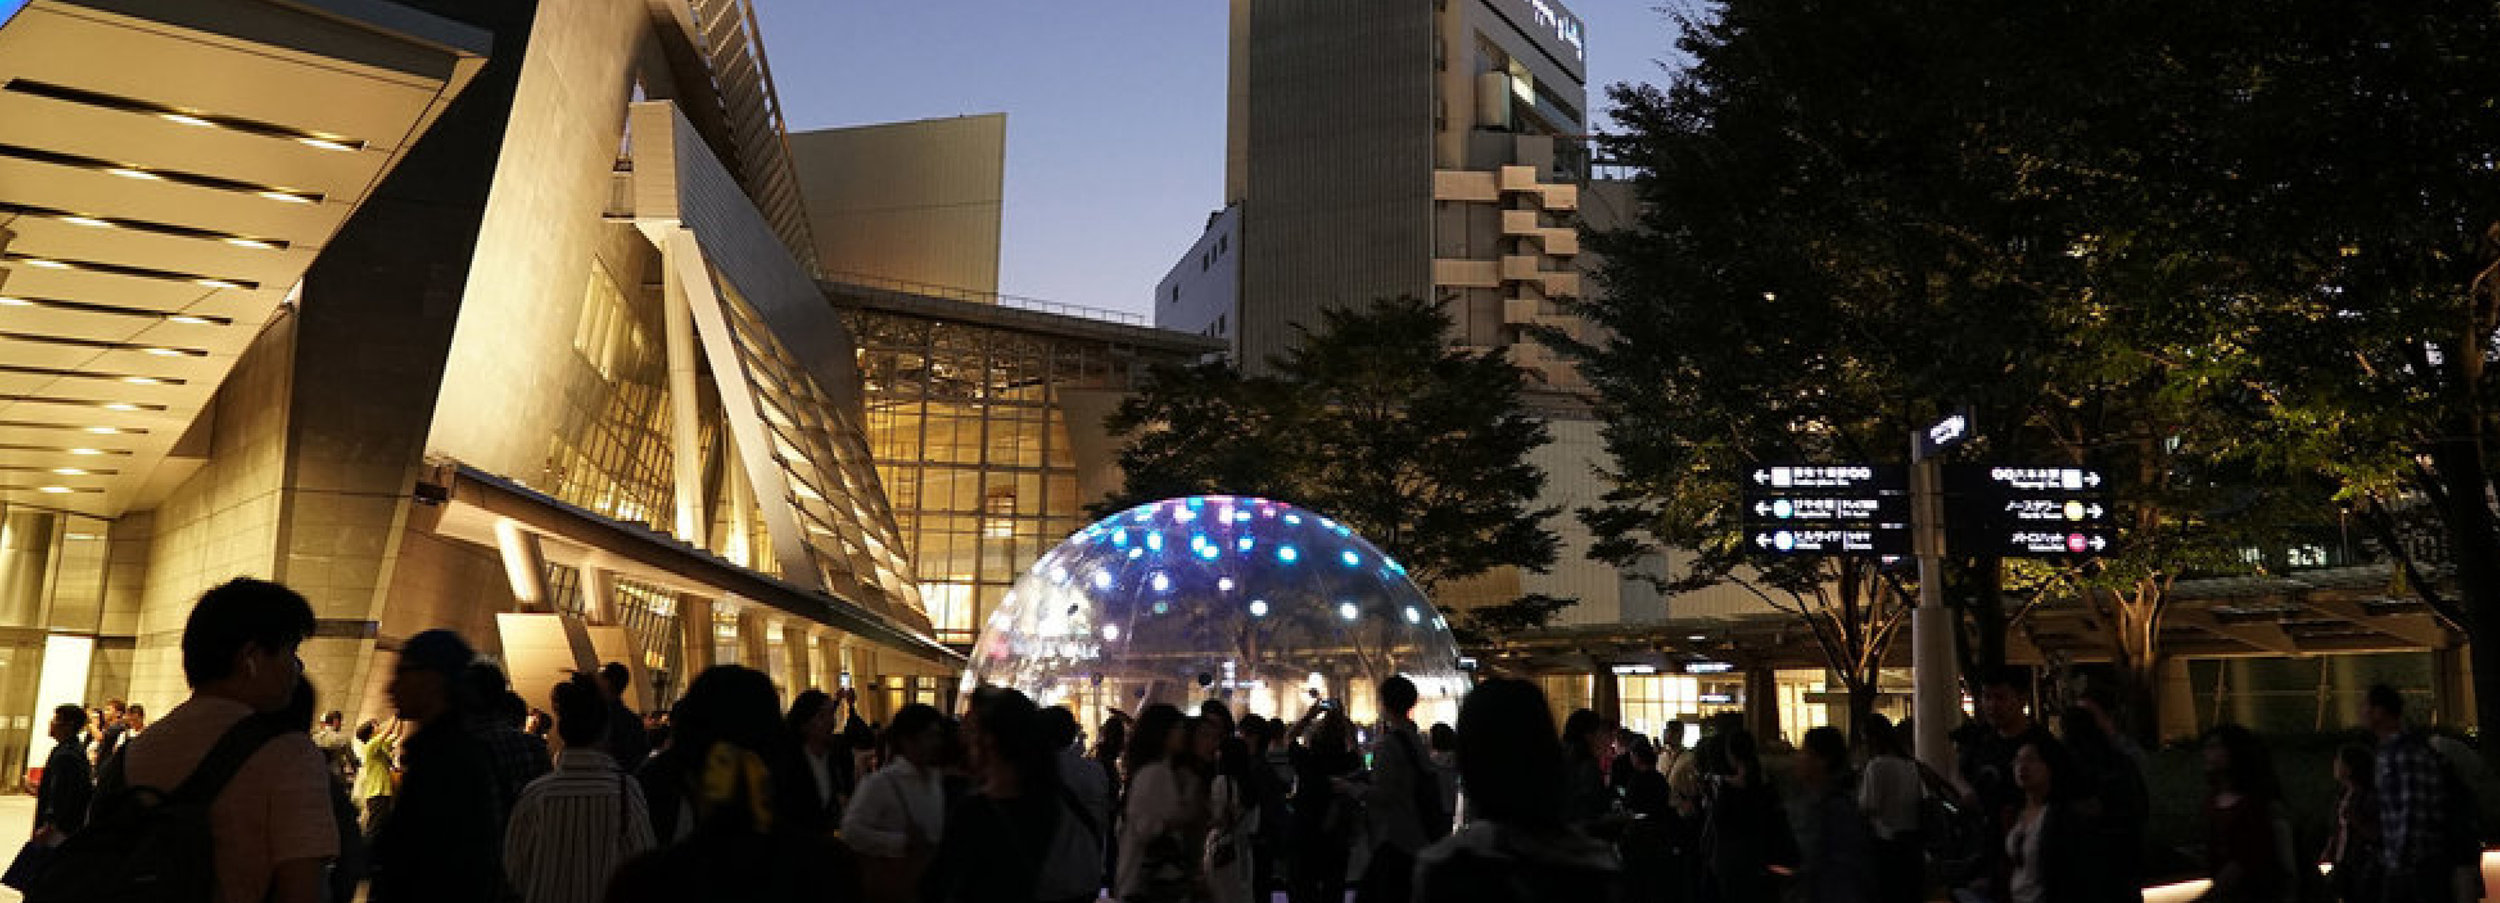 sonic light bubble eness in japan.jpg